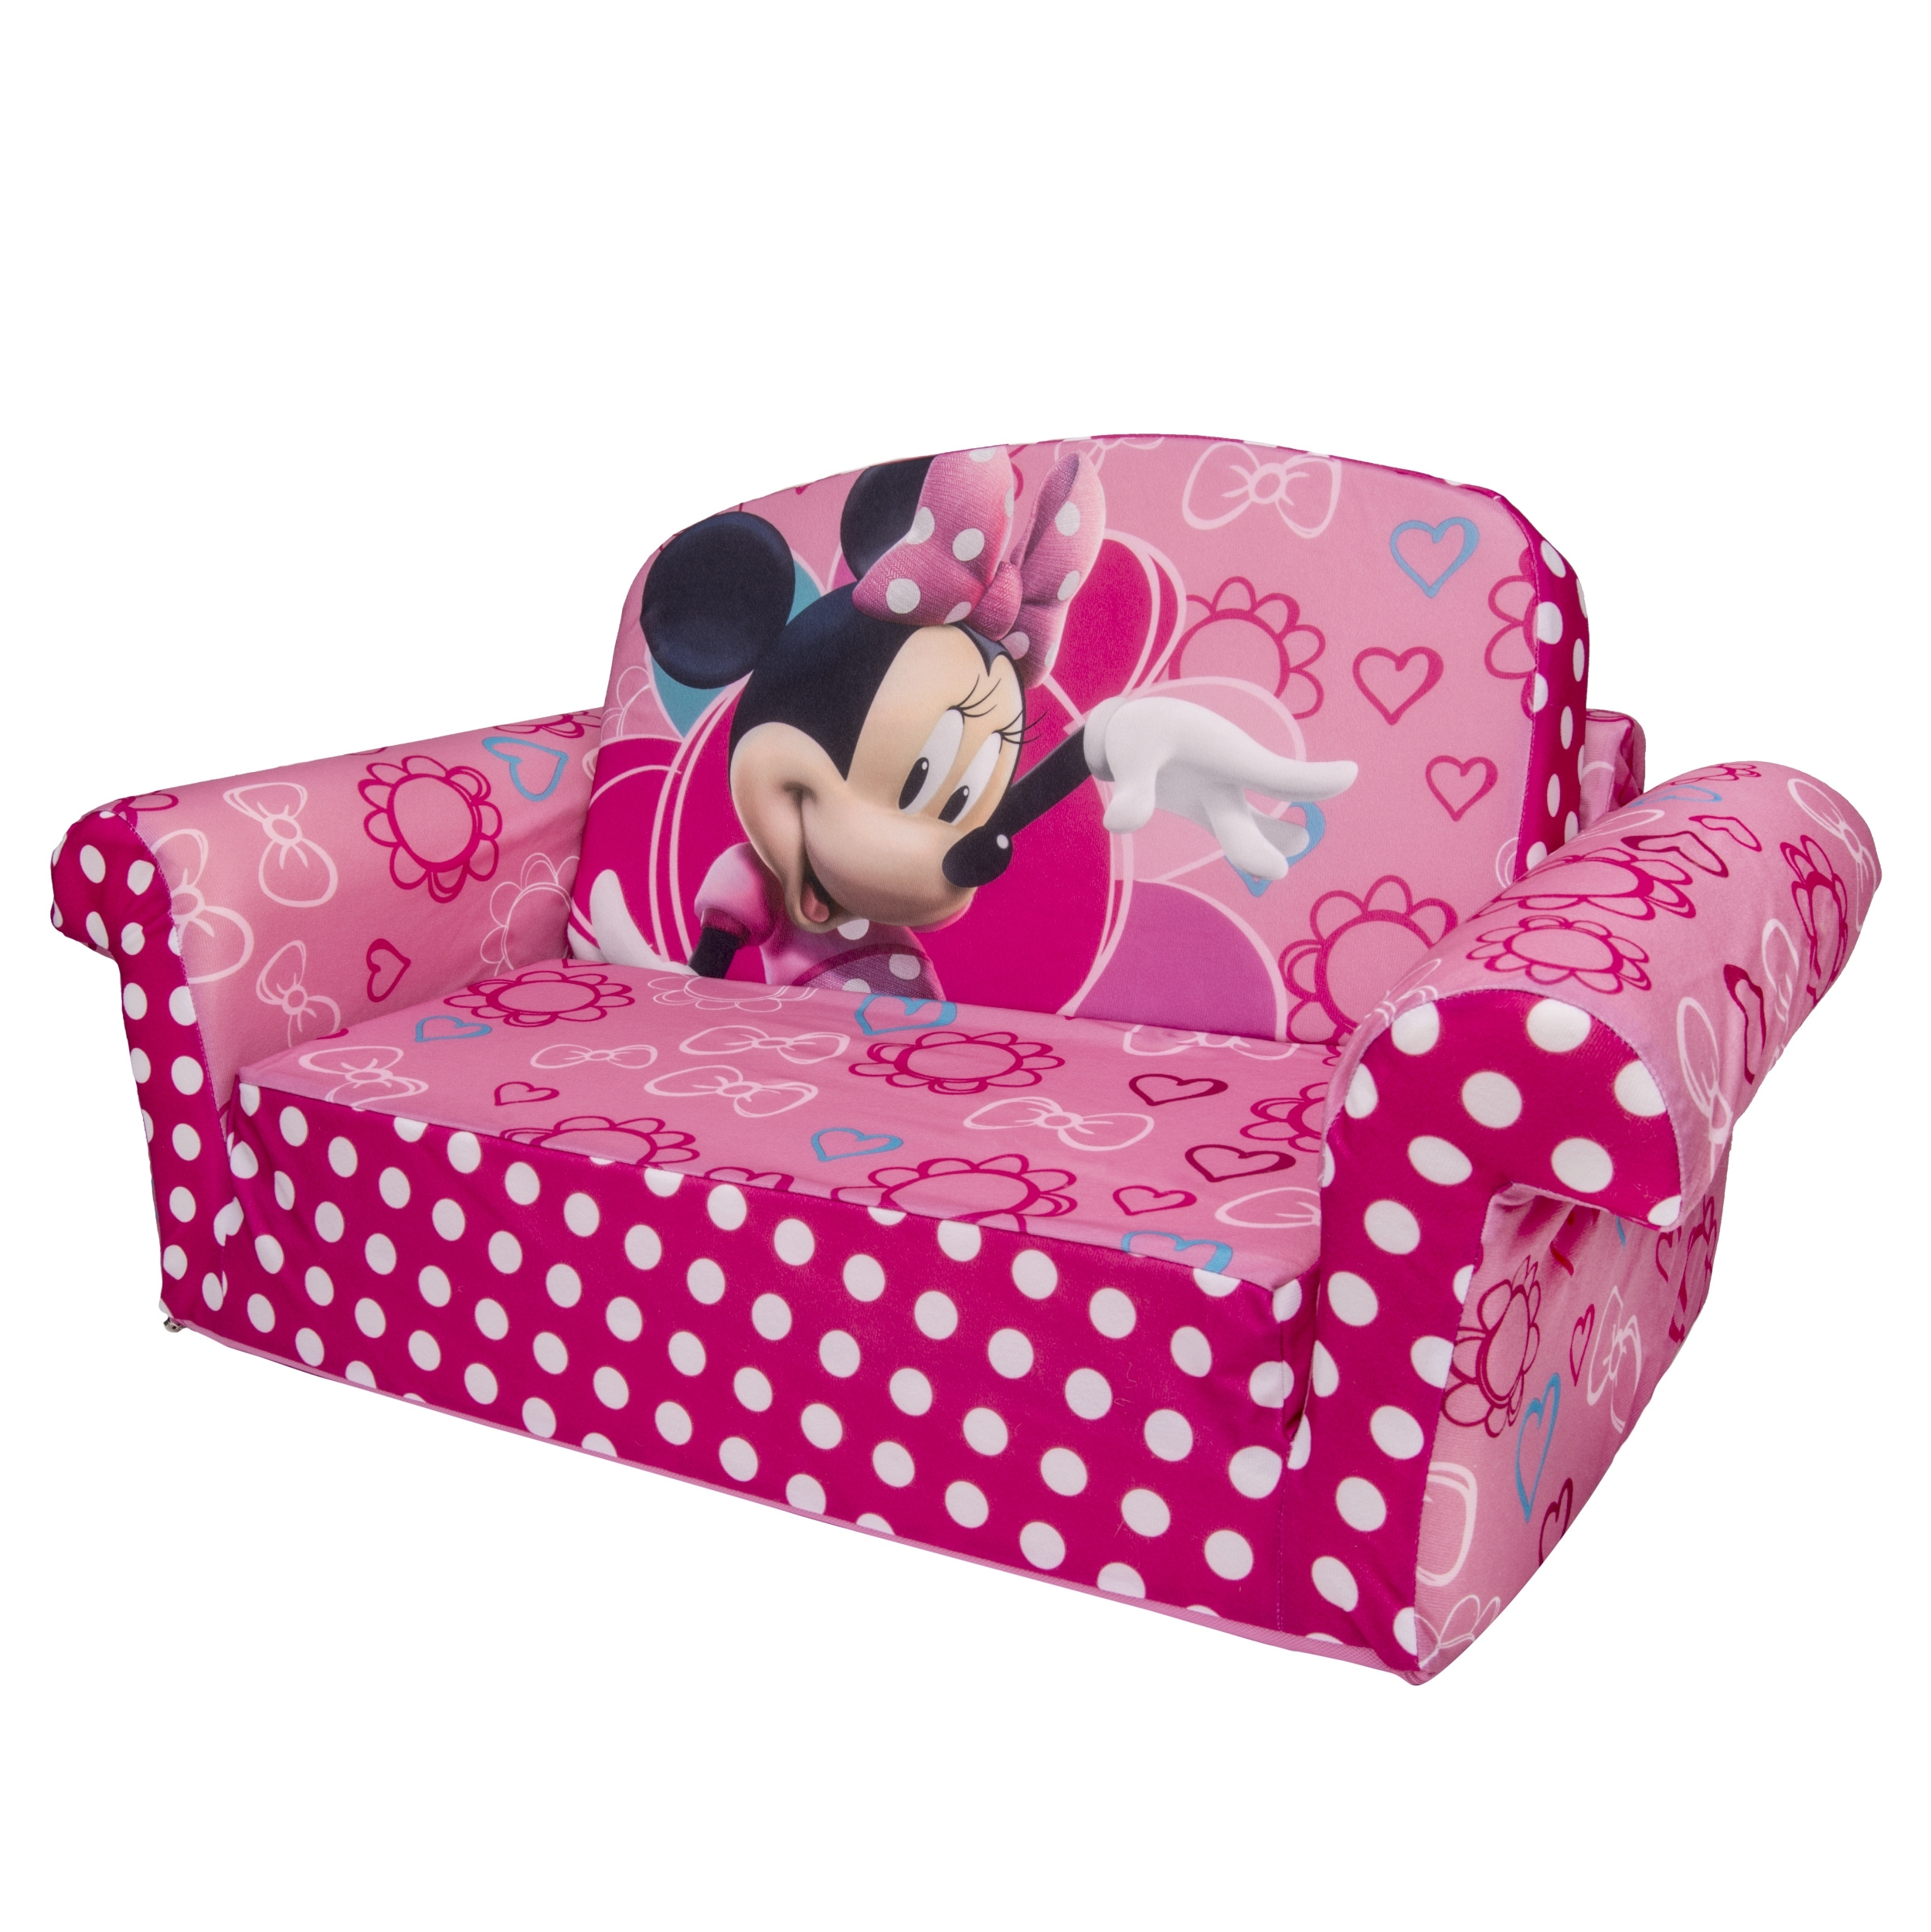 Well Liked Marshmallow Furniture, Children's 2 In 1 Flip Open Foam Sofa Within Disney Sofa Chairs (View 9 of 20)